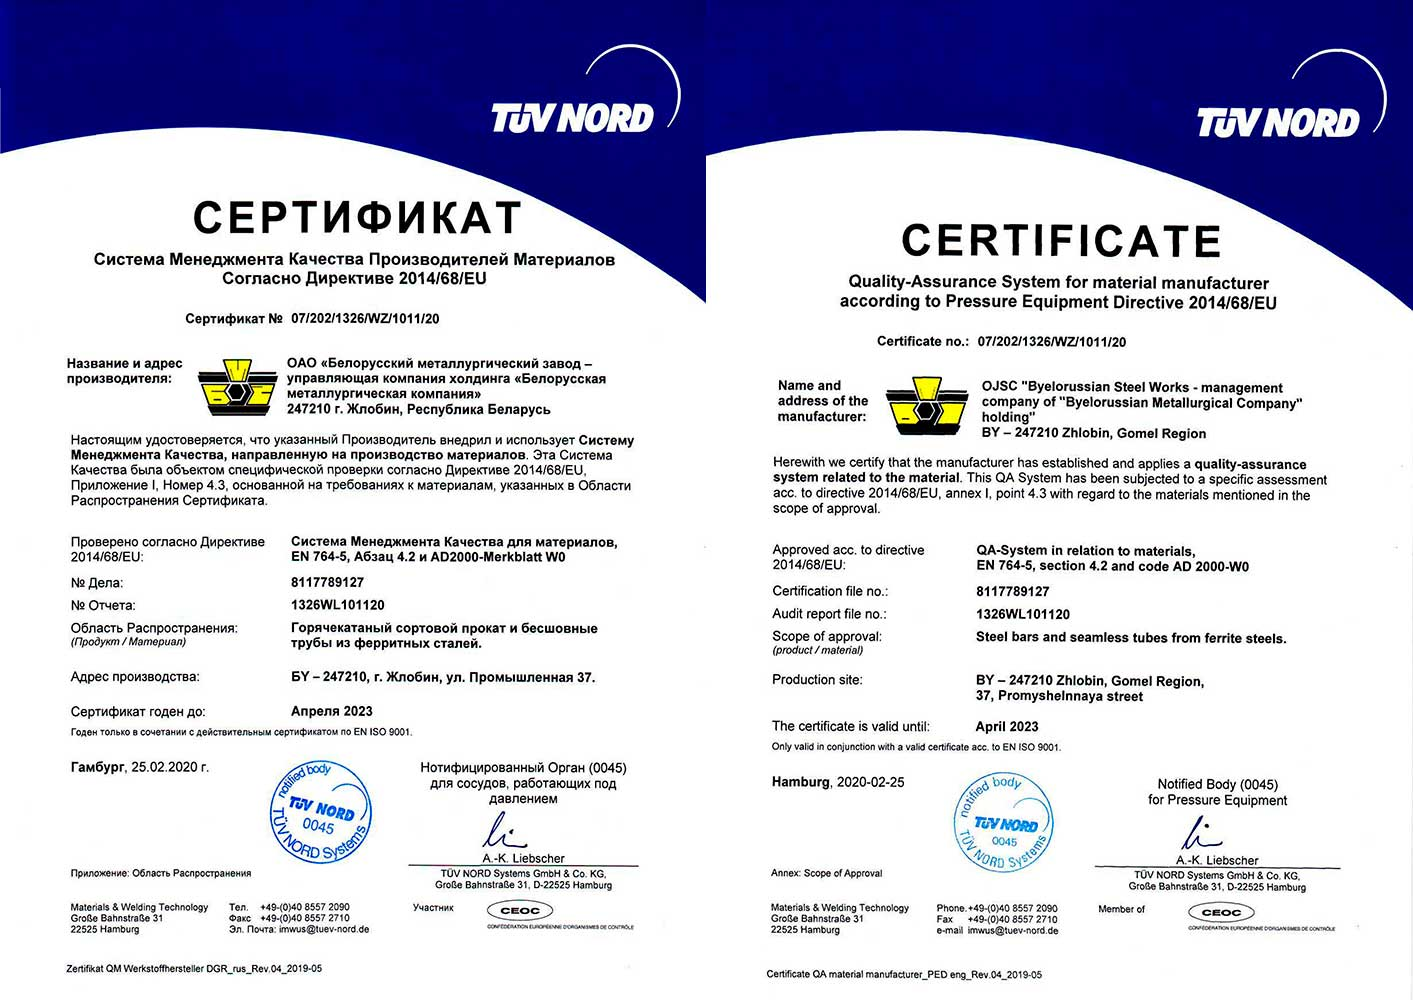 Certificate of compliance of TUV NORD Systems, Germany,  № 07-202-1326-WZ-1011/13  of quality management conformity with requirements AD 2000 Merkblatt W0 and EN 764-5, chapter 4.2 and Directive 97/23/EG for production steel bars and seamless tubes from ferrite steels.